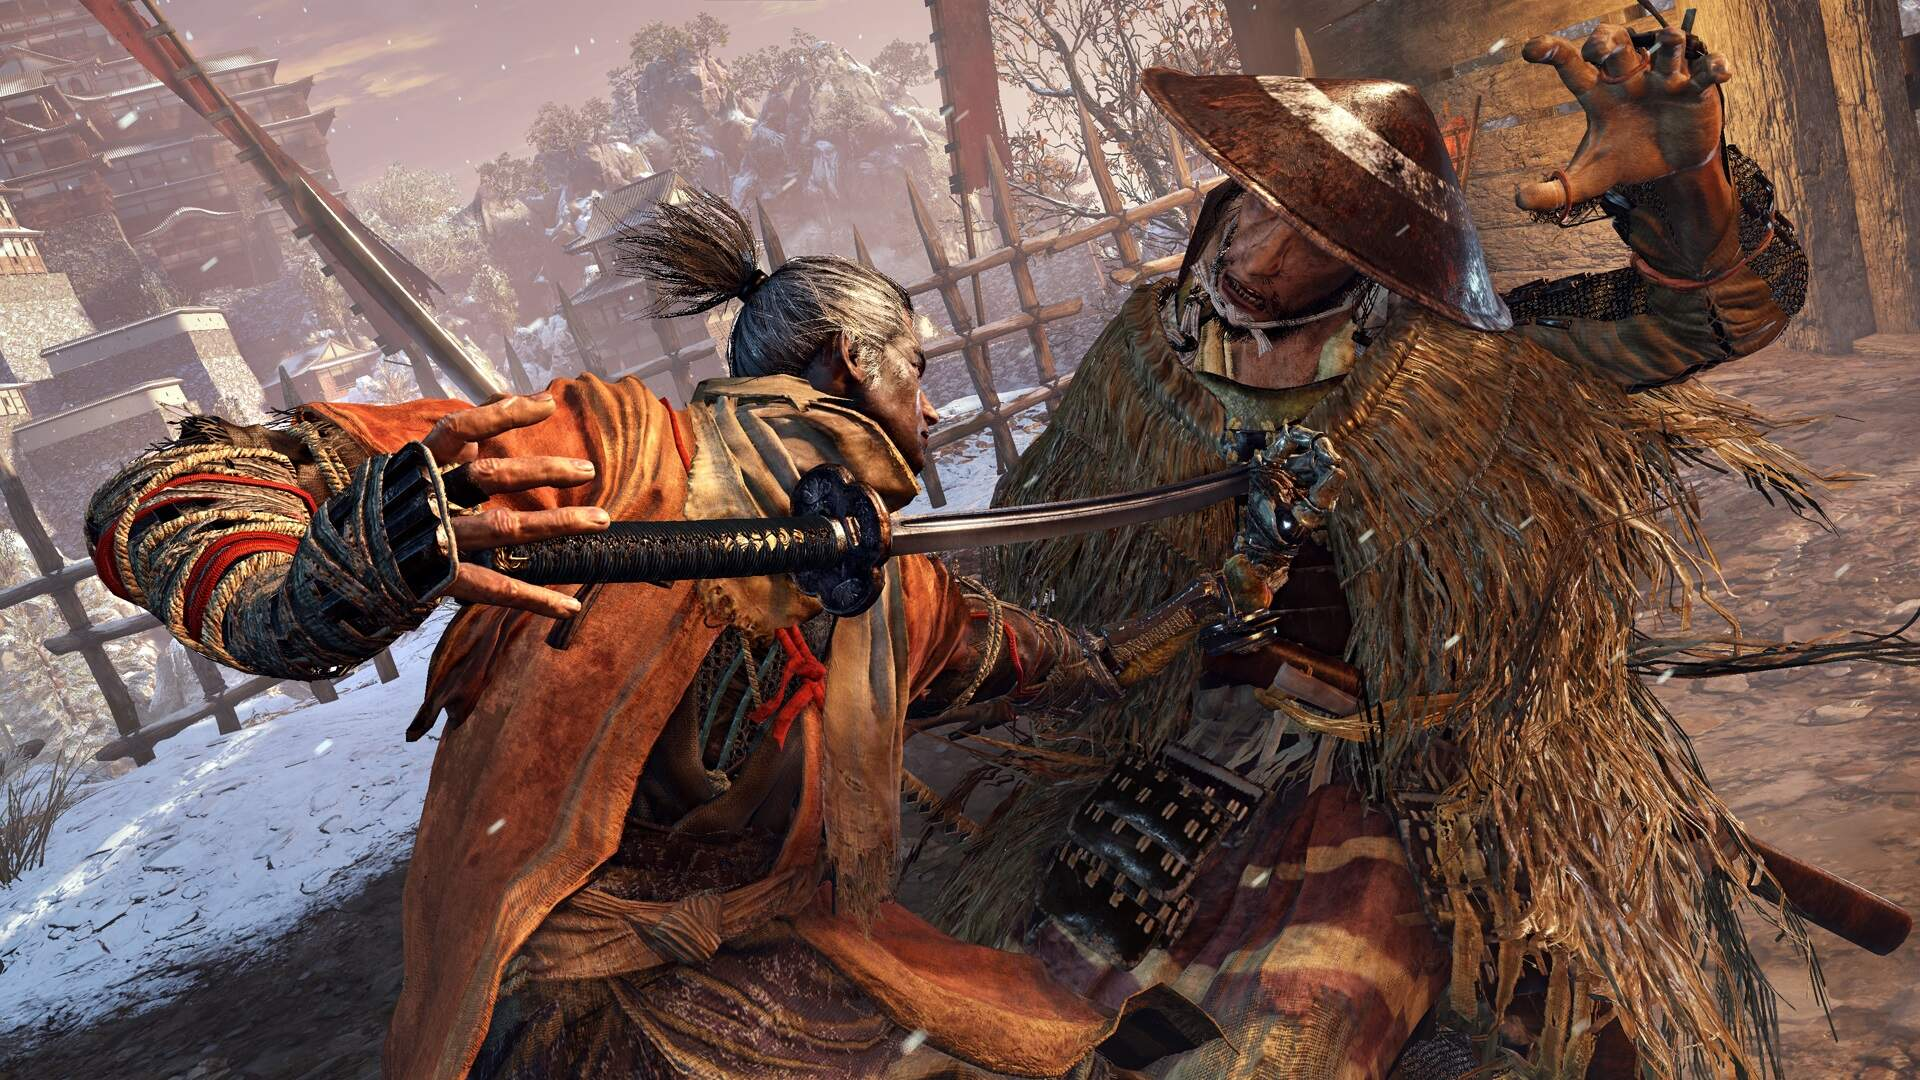 """Dark Souls Creator: Sekiro Shadows Die Twice Will Not Be a """"Story-Driven Product"""""""